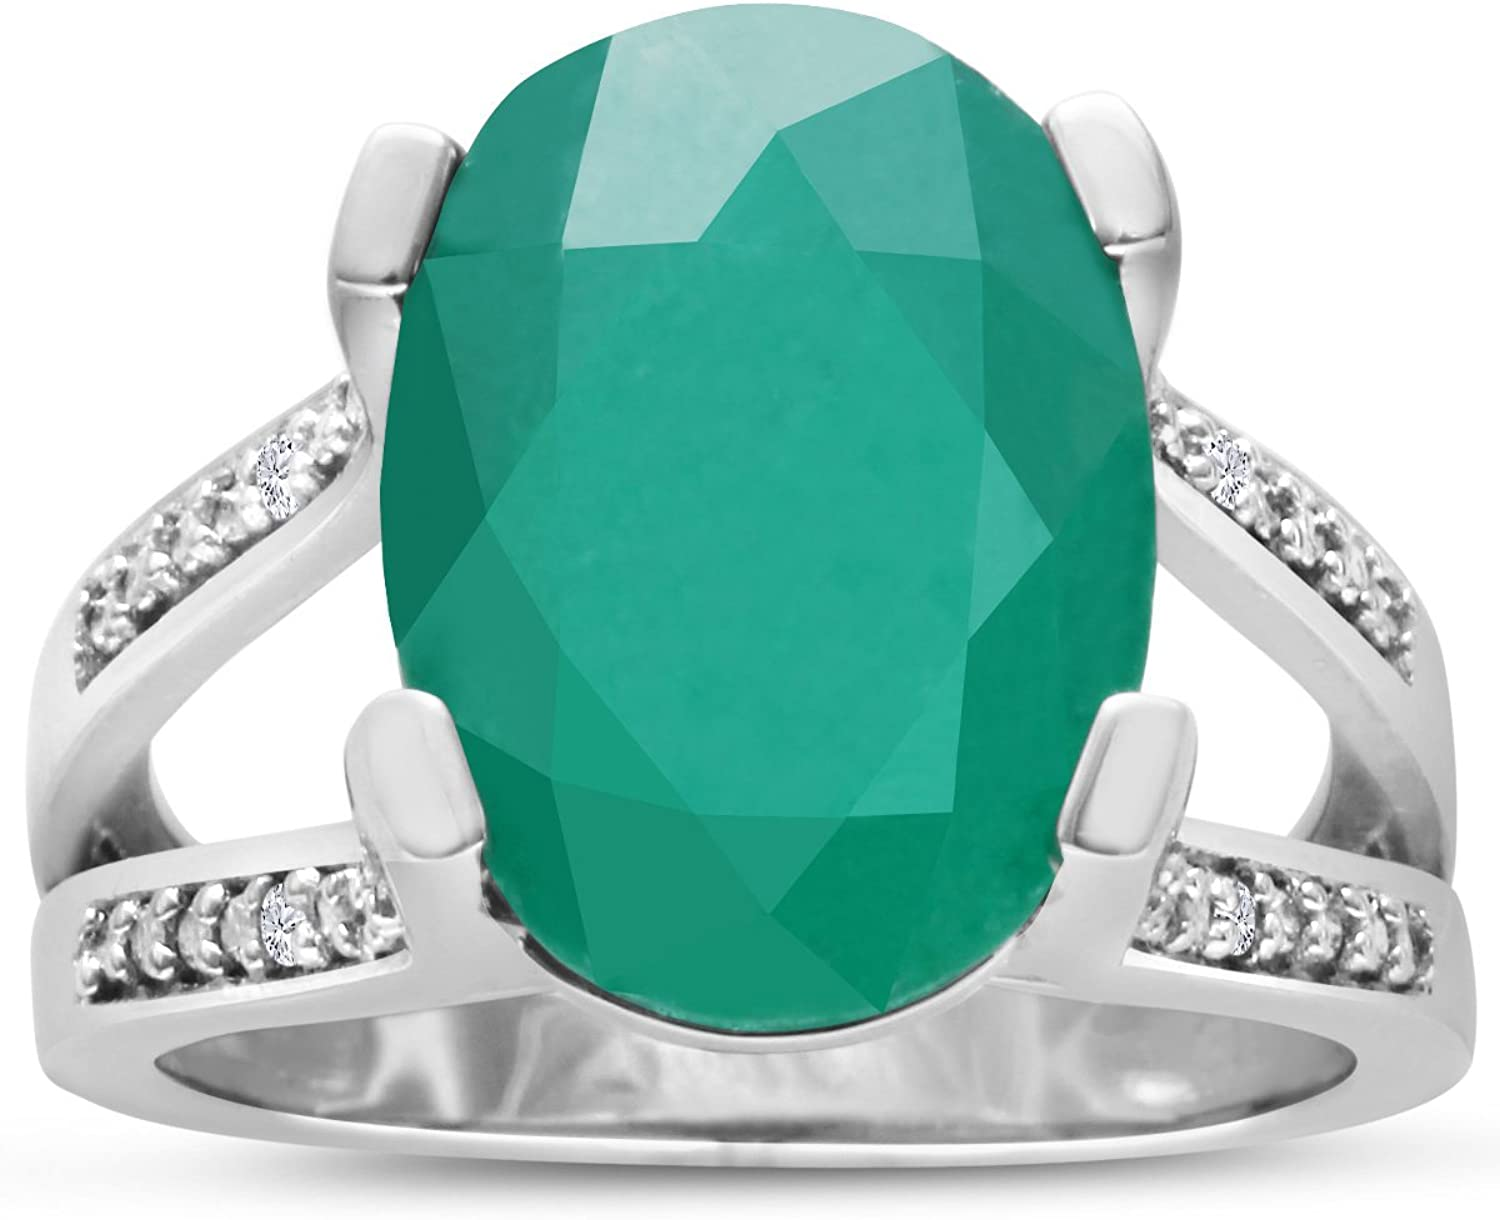 5 1 2ct Oval Shape Green Onyx and Diamond Ring Crafted In Solid Sterling Silv...